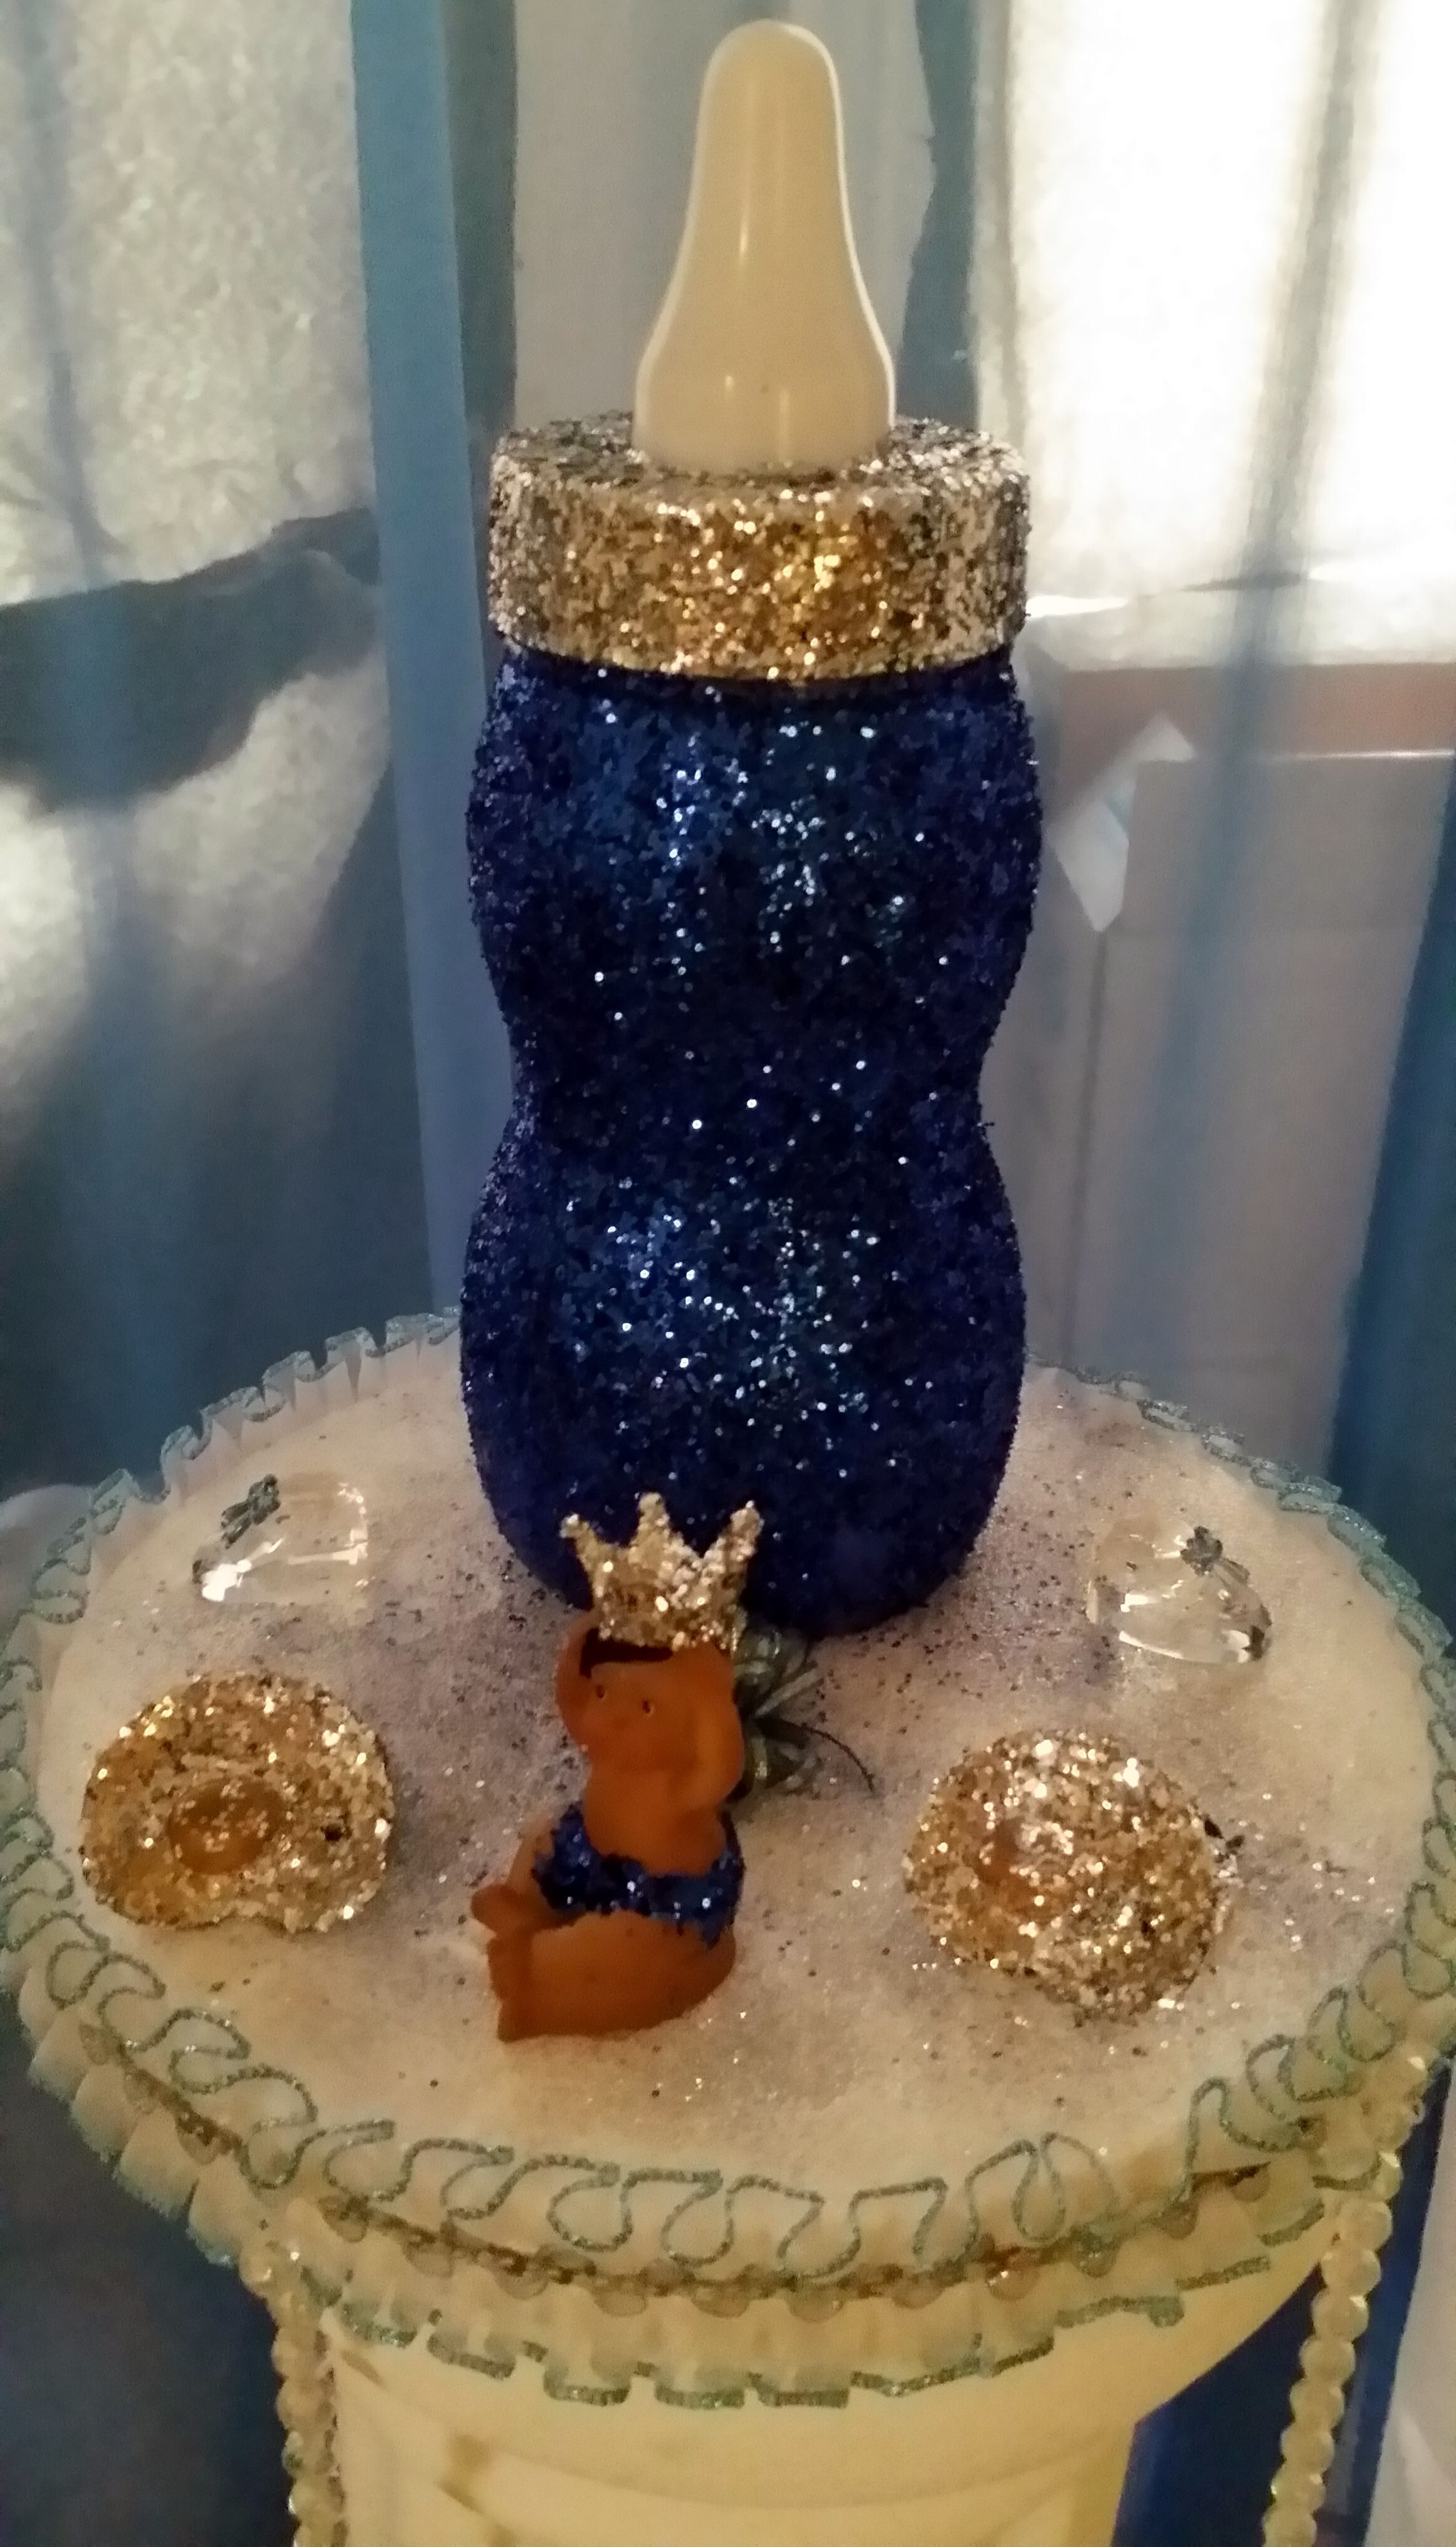 Jumbo Glitter Baby Bottle With Prince Party Themes